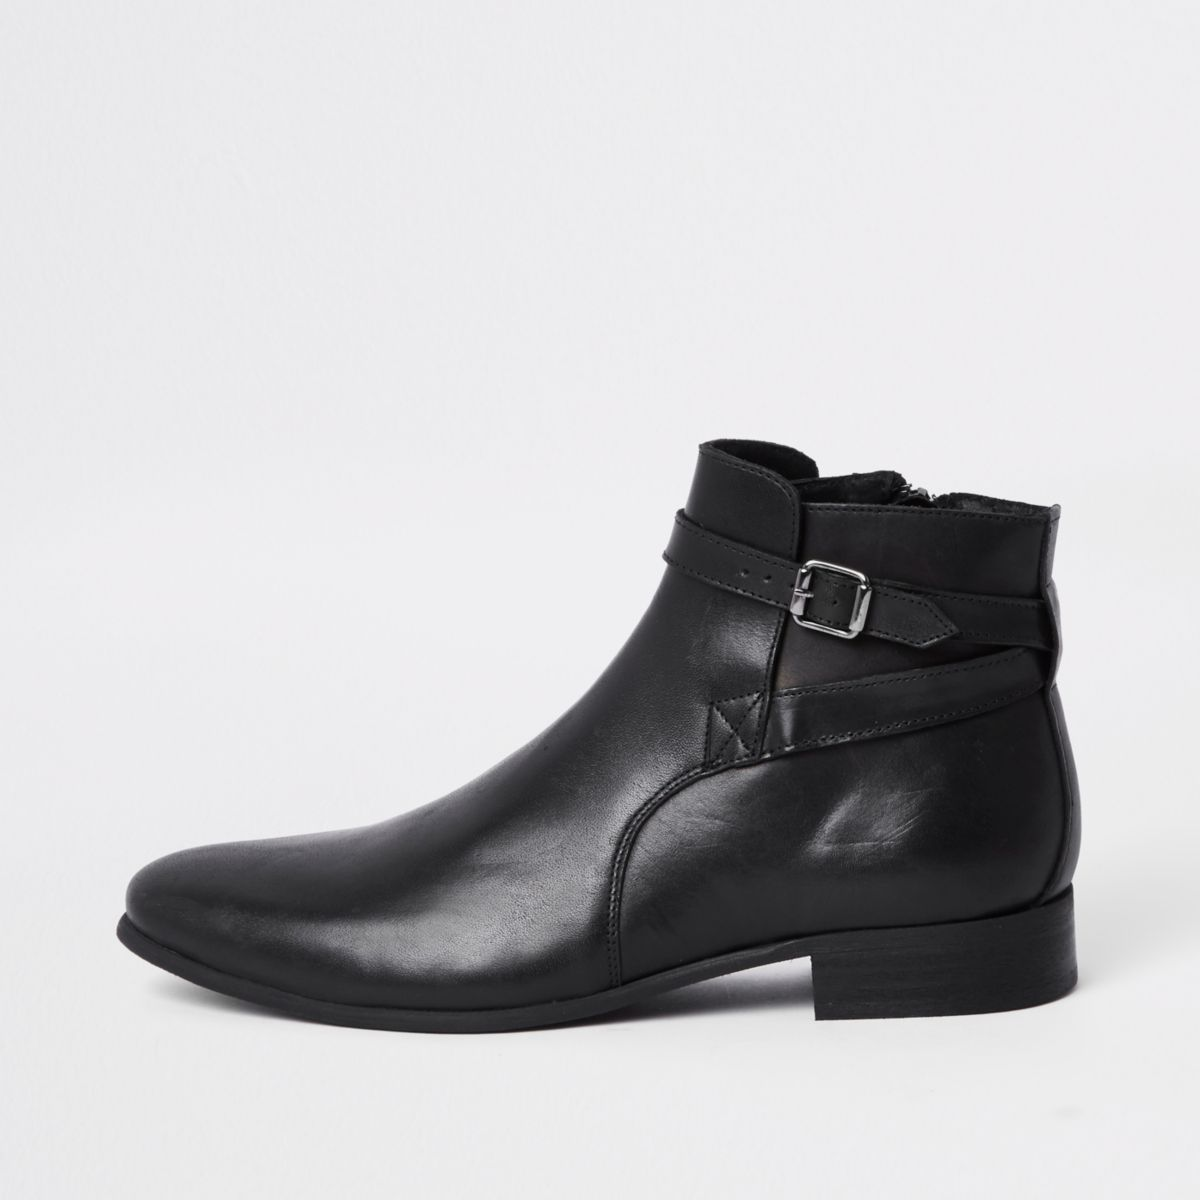 Black leather buckle strap boots